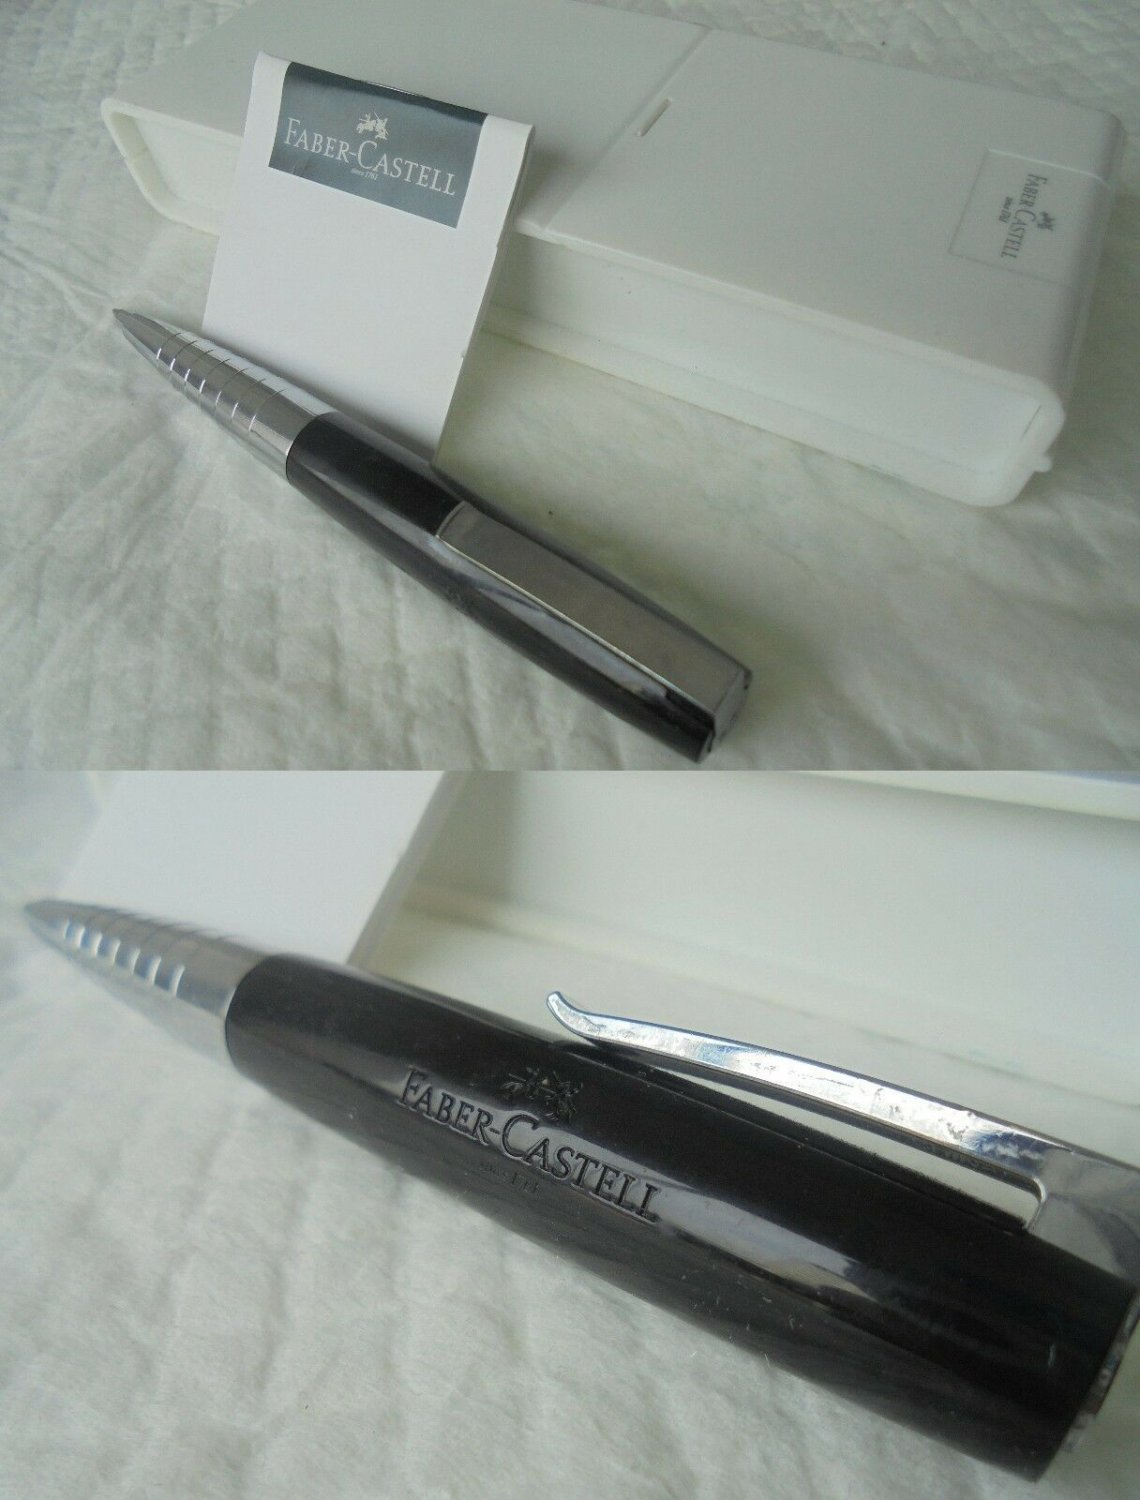 FABER CASTELL LOOM Piano black ball pen and steel In gift box Original